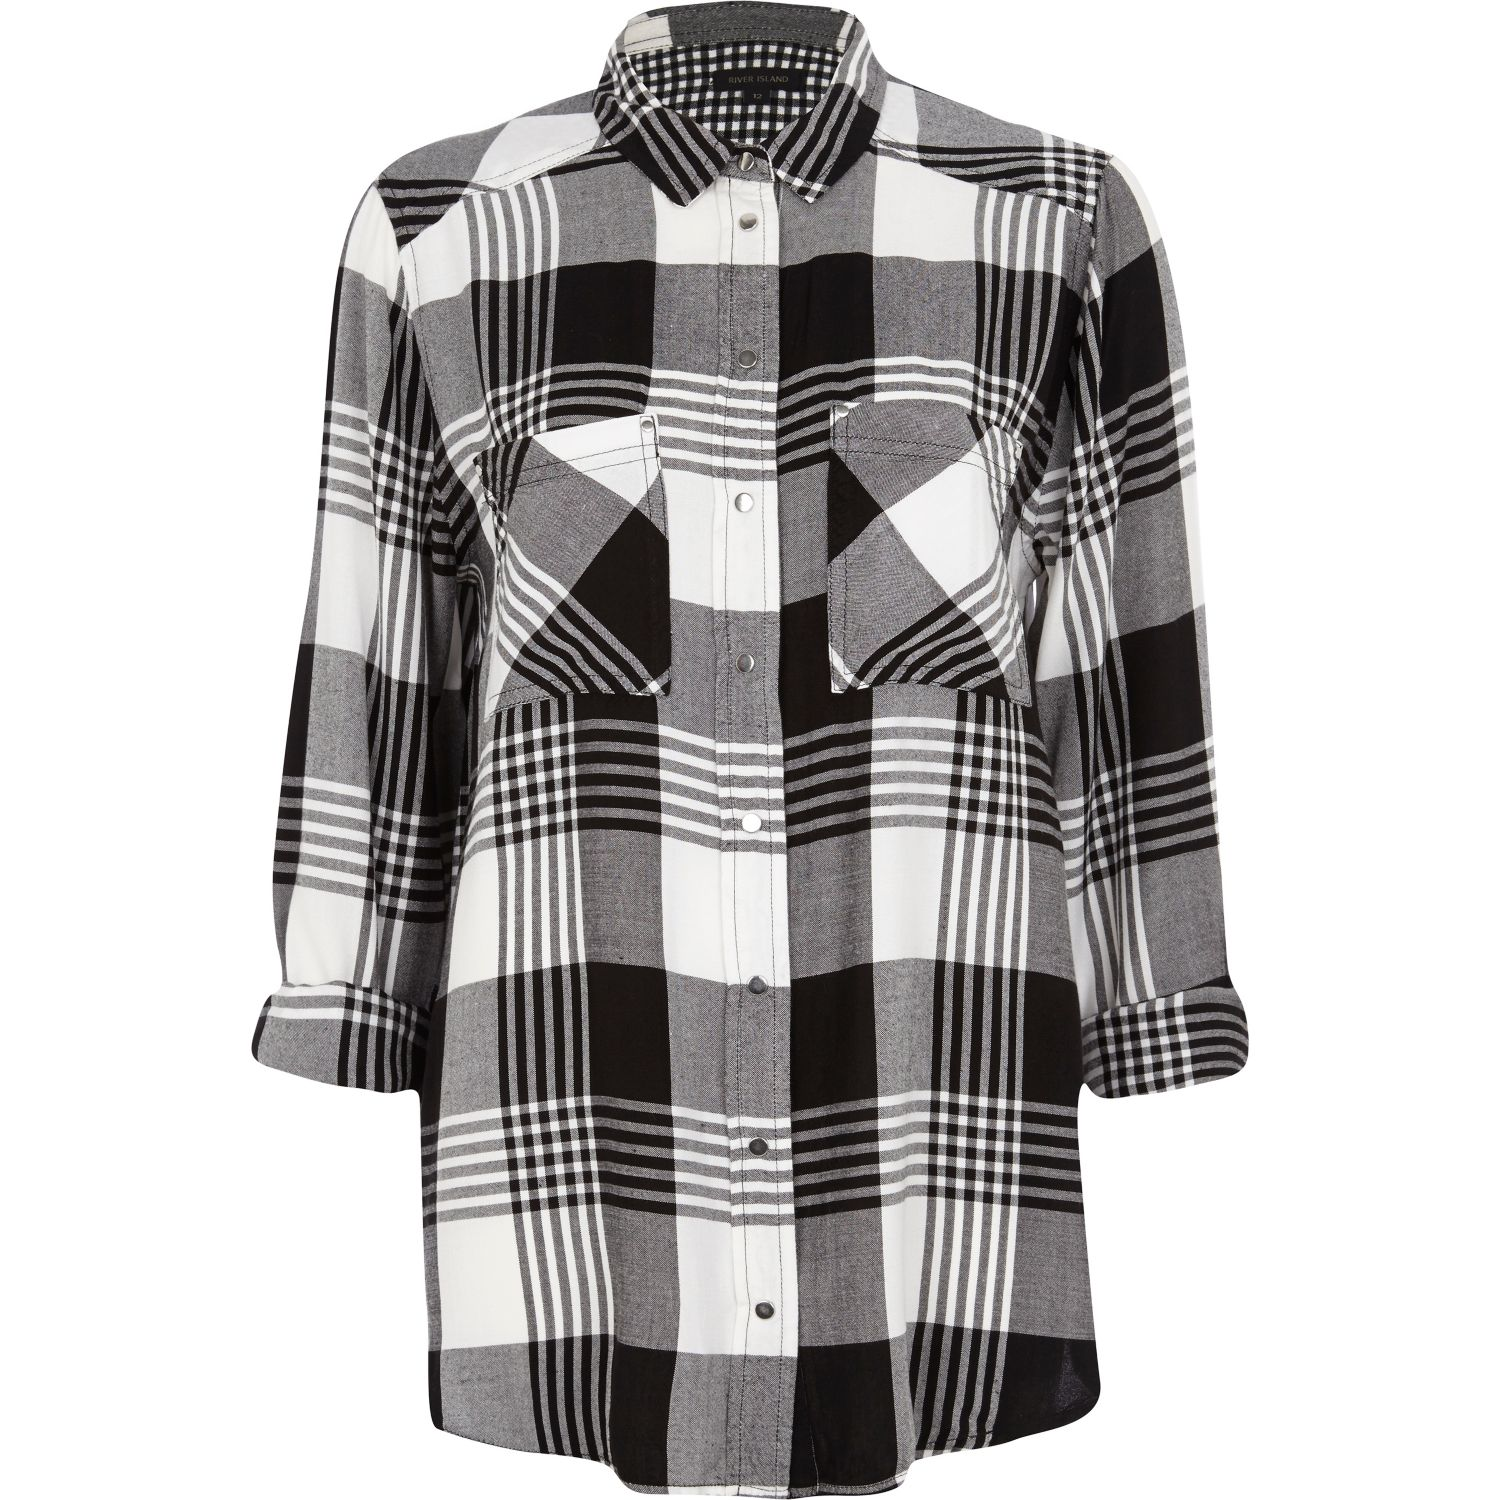 Black and white check oversized shirt